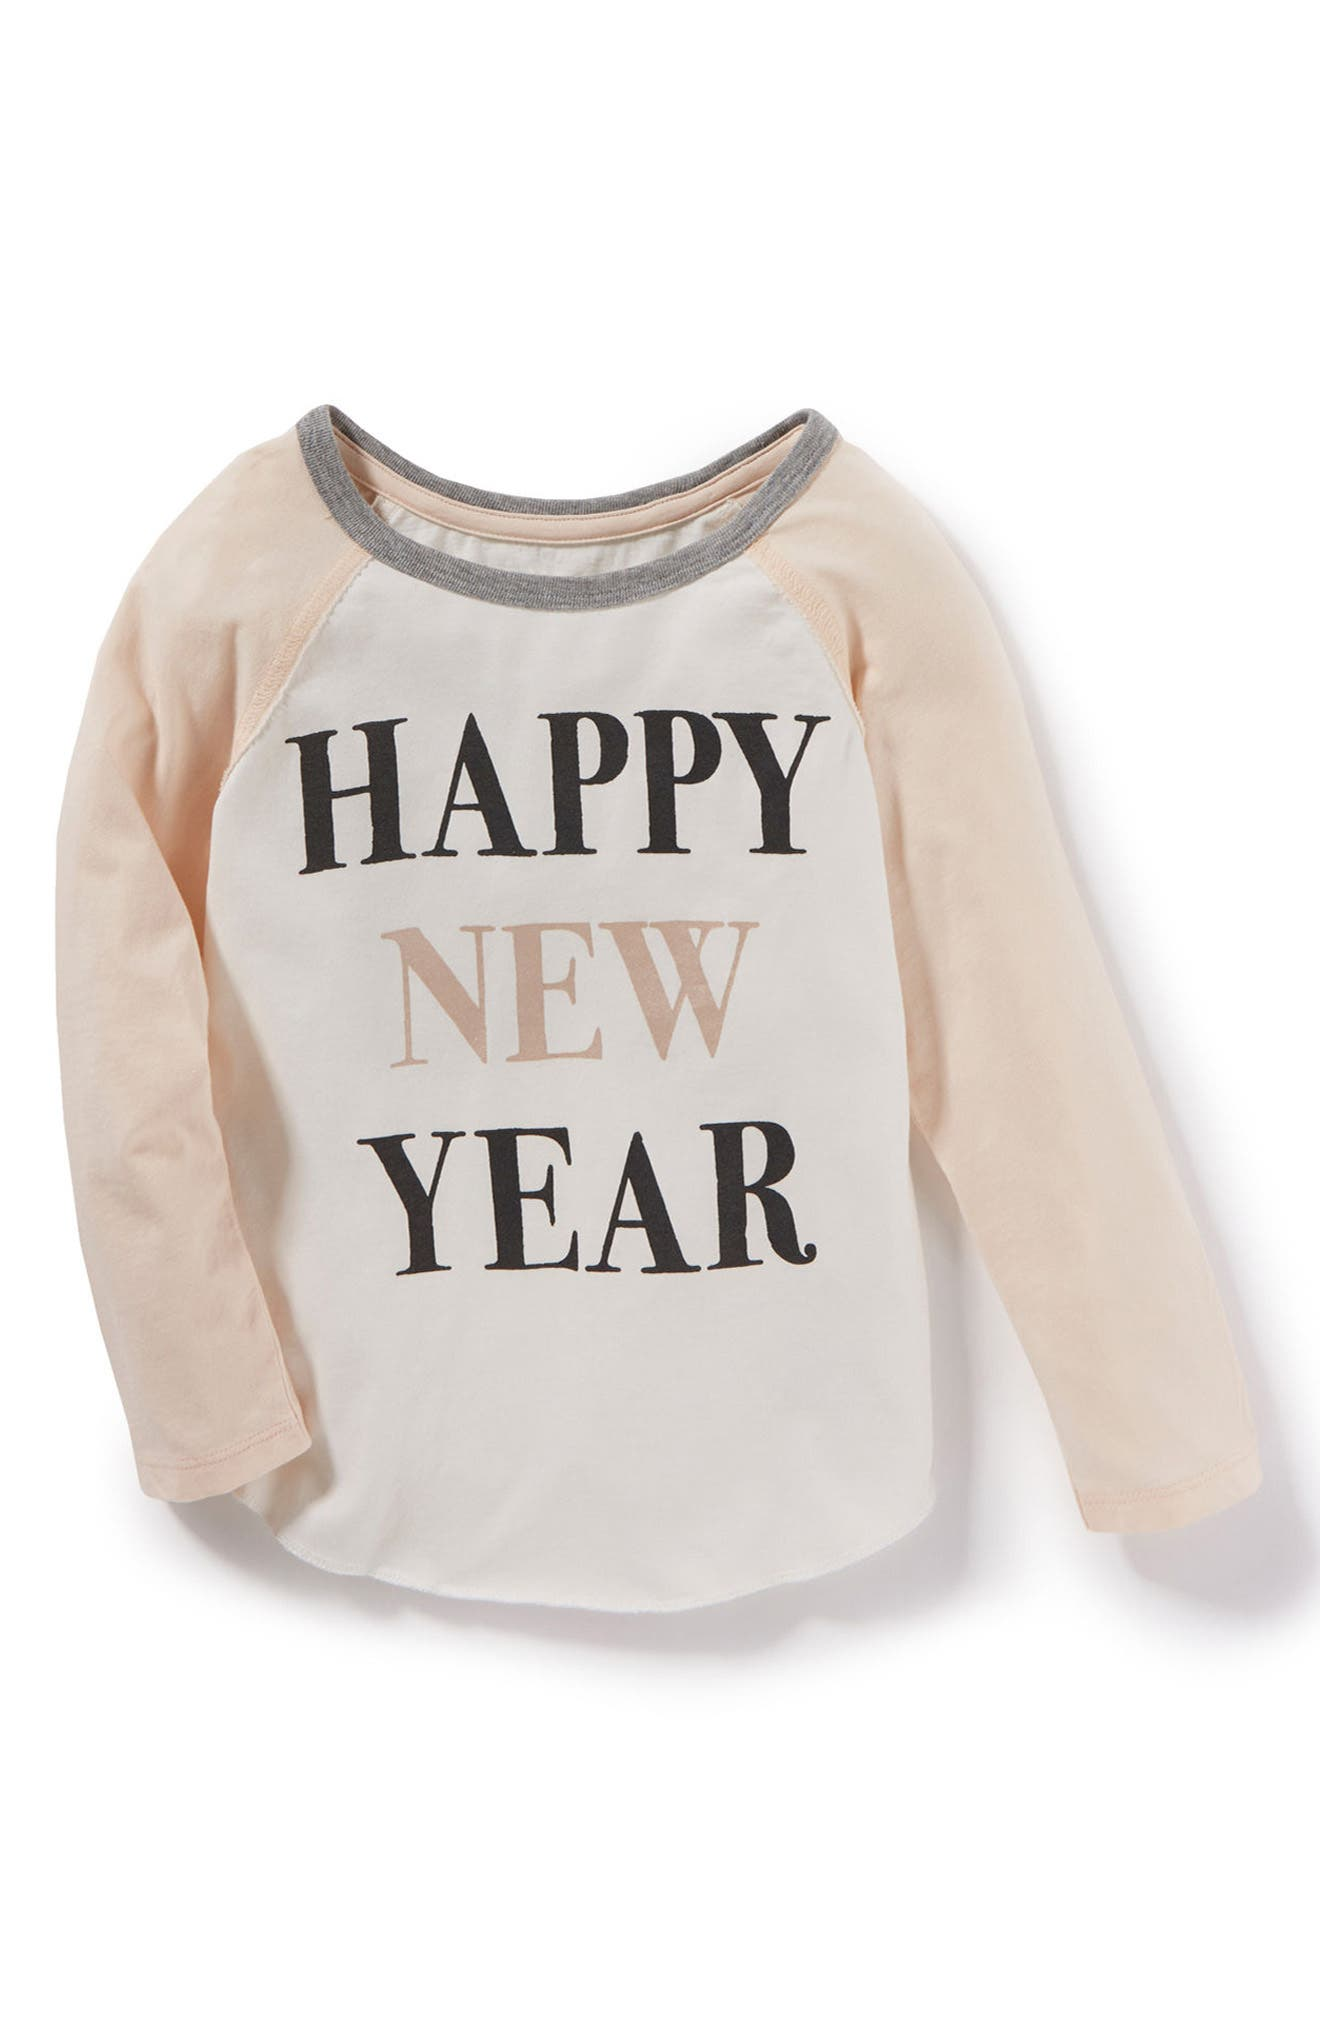 Happy New Year Graphic Tee,                             Main thumbnail 1, color,                             900